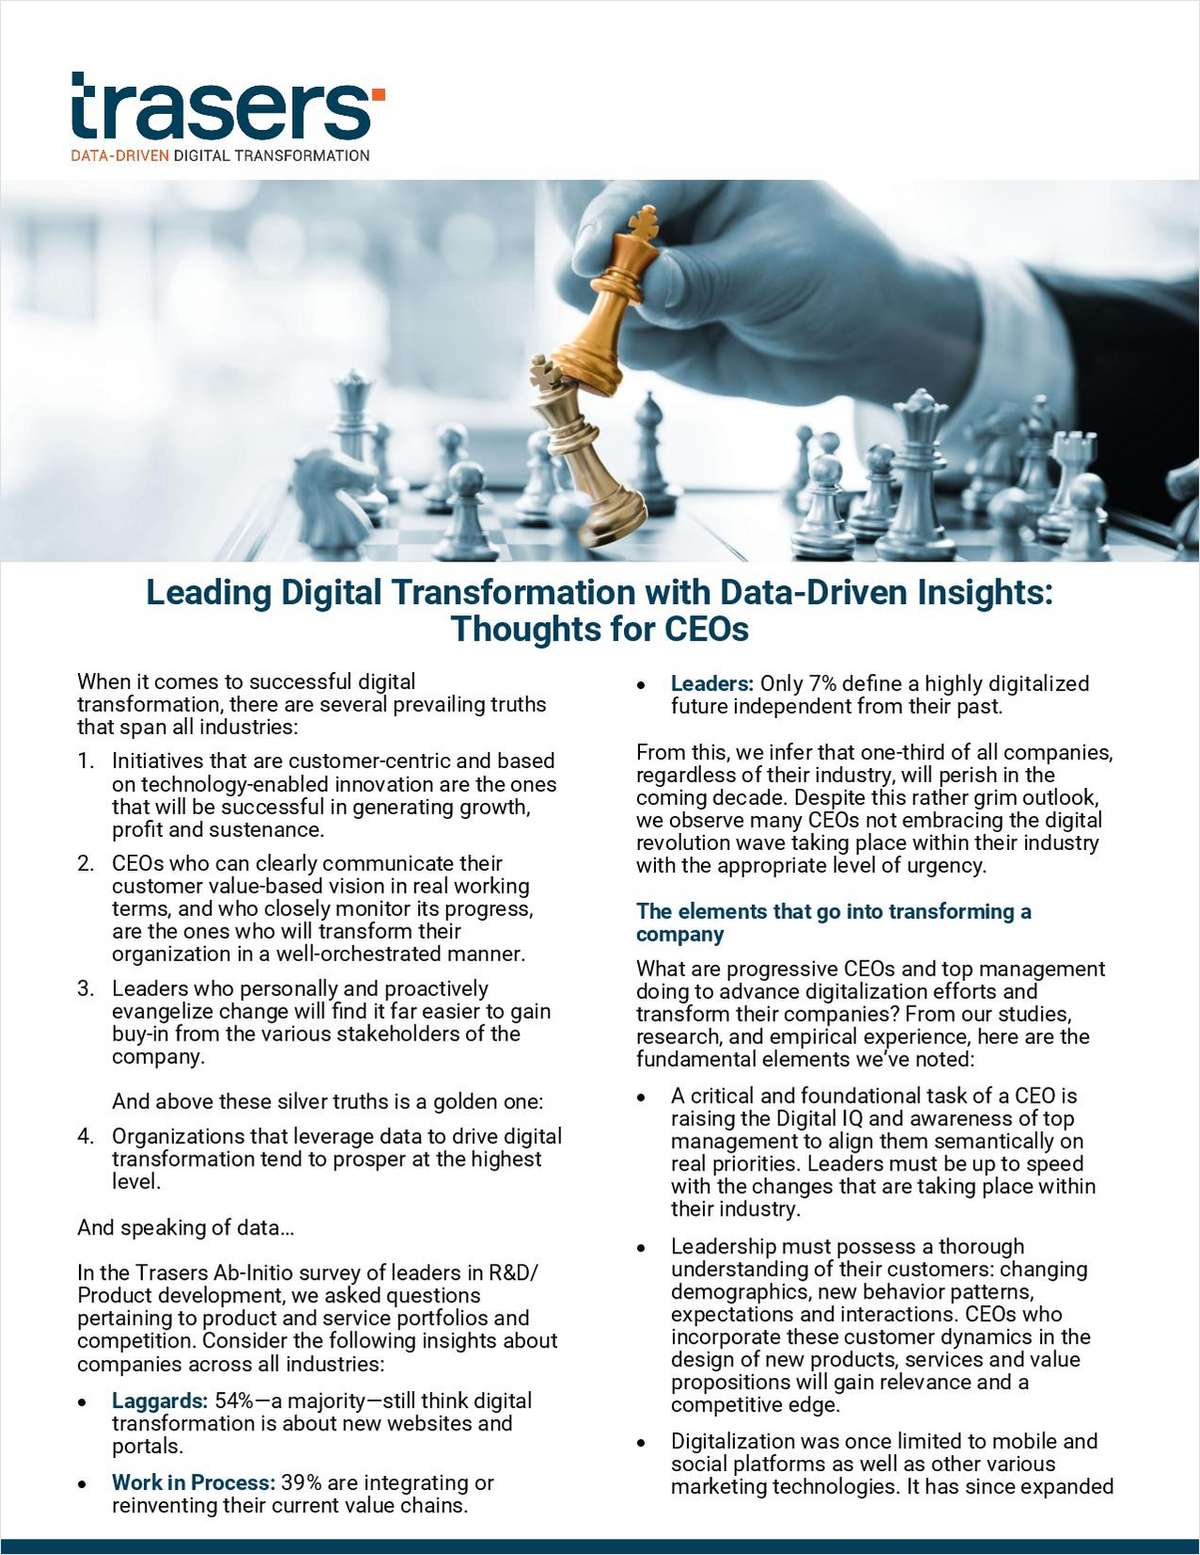 Leading Digital Transformations with Data-Driven Insights: Thoughts for CEOs